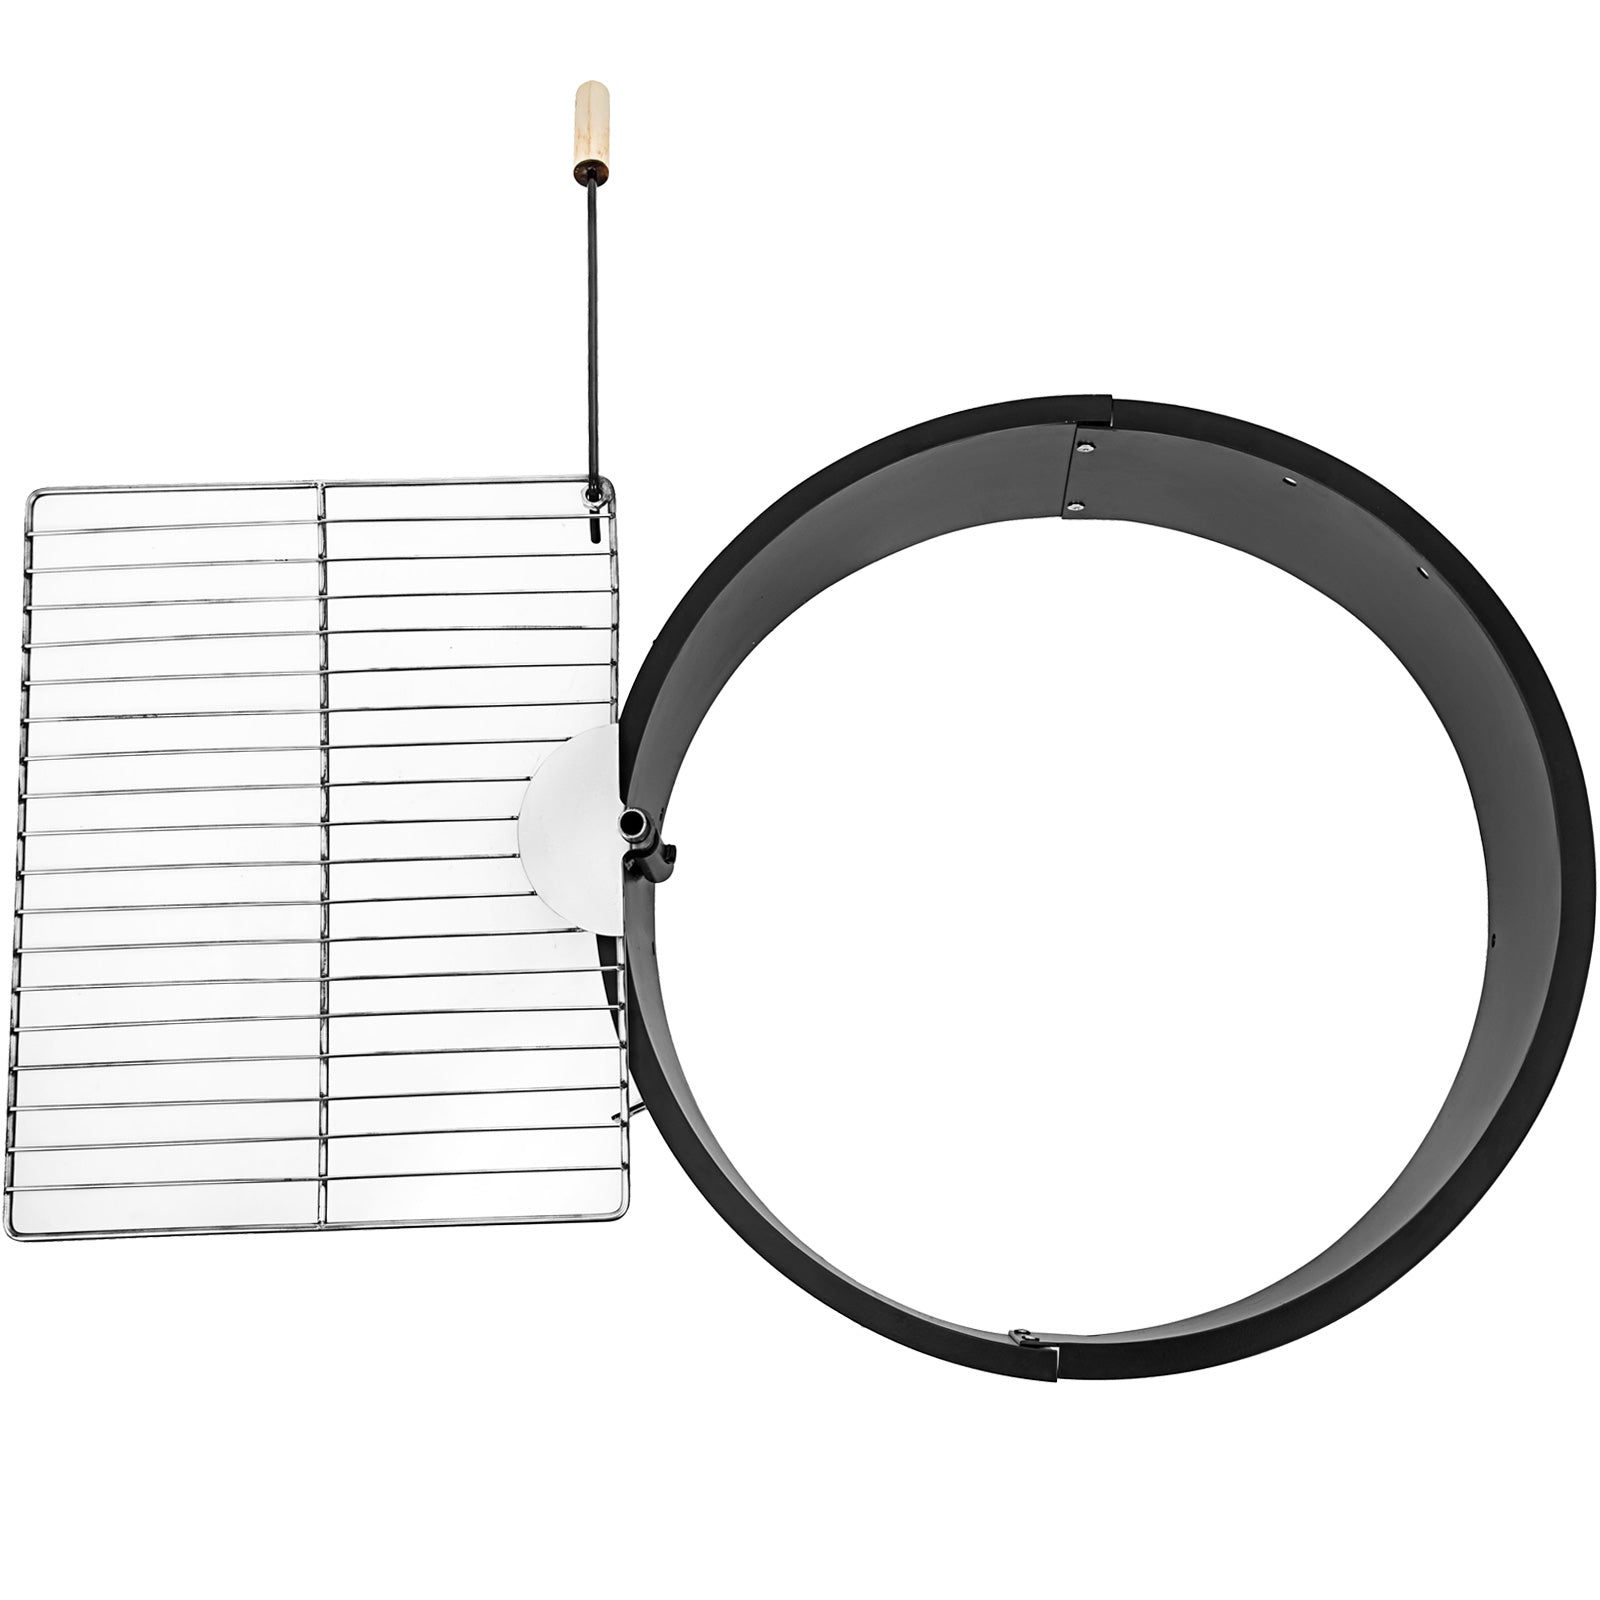 Hearth Solid Steel 24 Inch Outdoor Garden Patio Round Fire Pit Ring W/grill